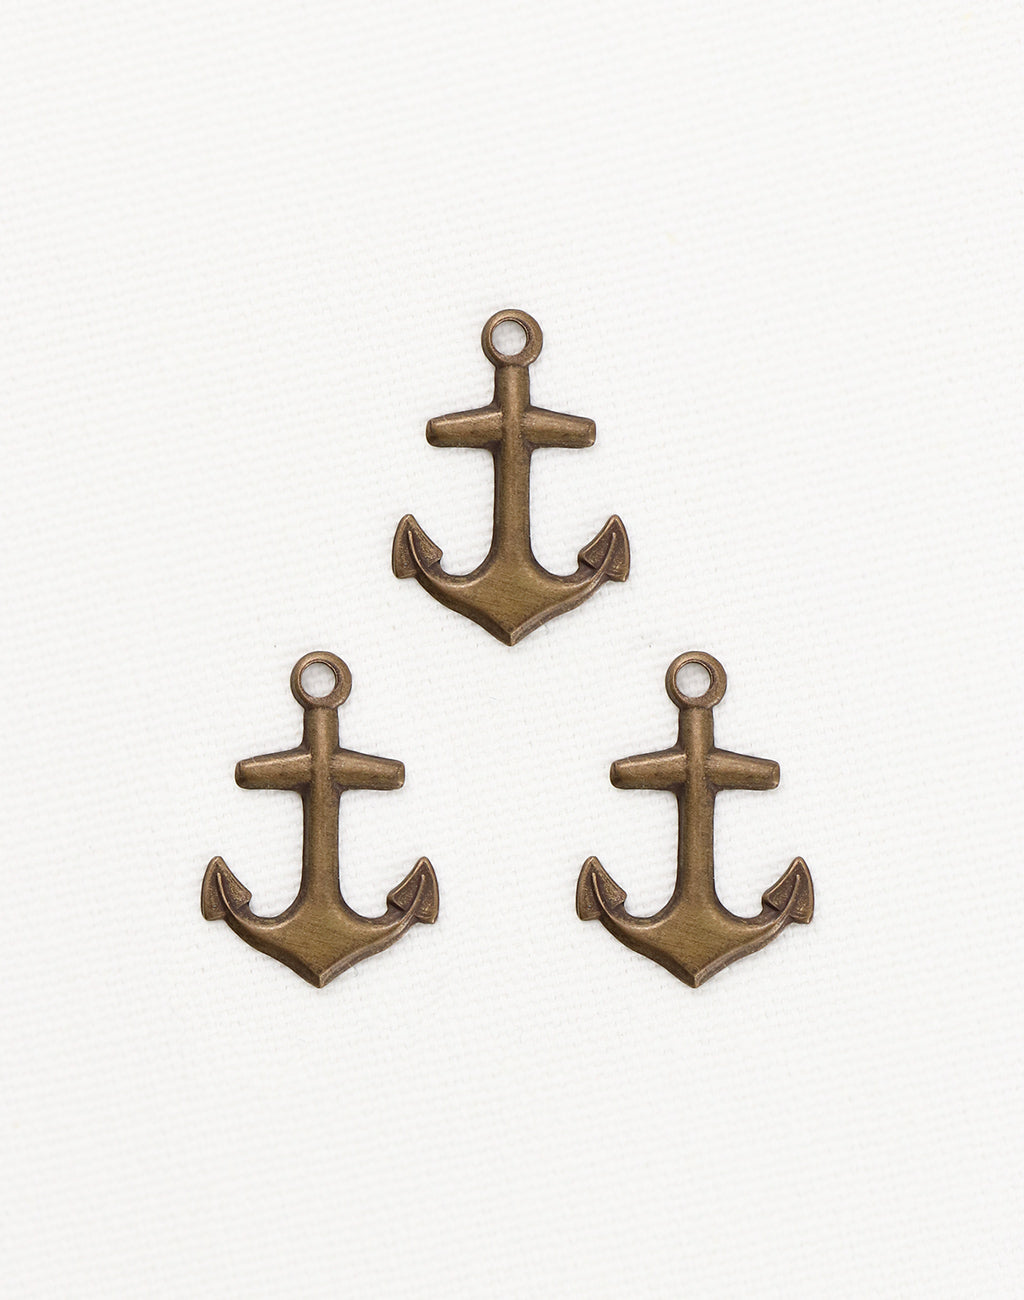 Nautical Anchor, 21x15mm, (3pcs)